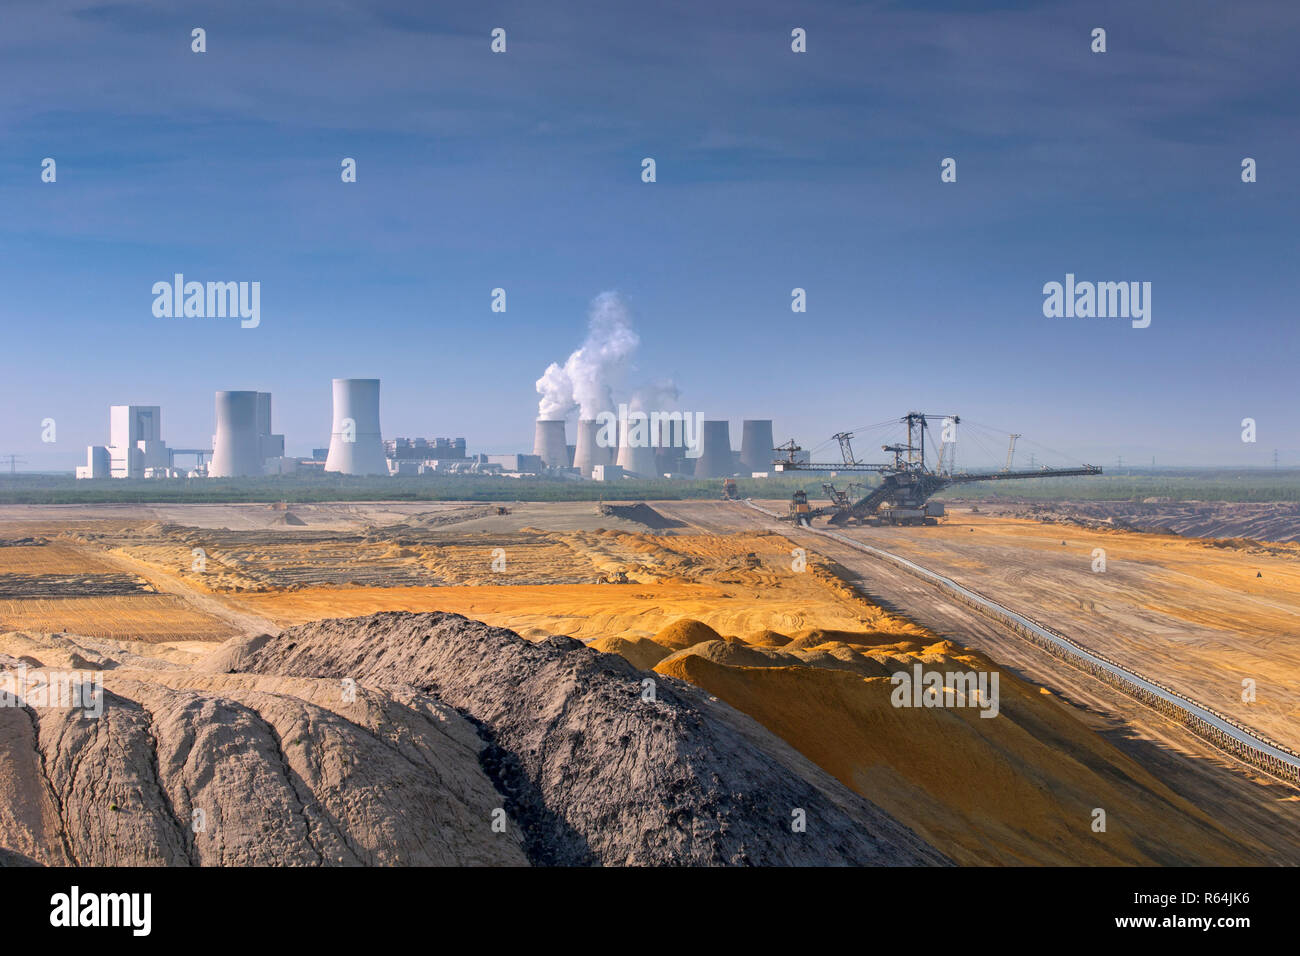 Boxberg Power Station / Kraftwerk Boxberg, lignite-fired power plant and Nochten opencast pit near Weißwasser / Weisswasser, Saxony, Eastern Germany Stock Photo